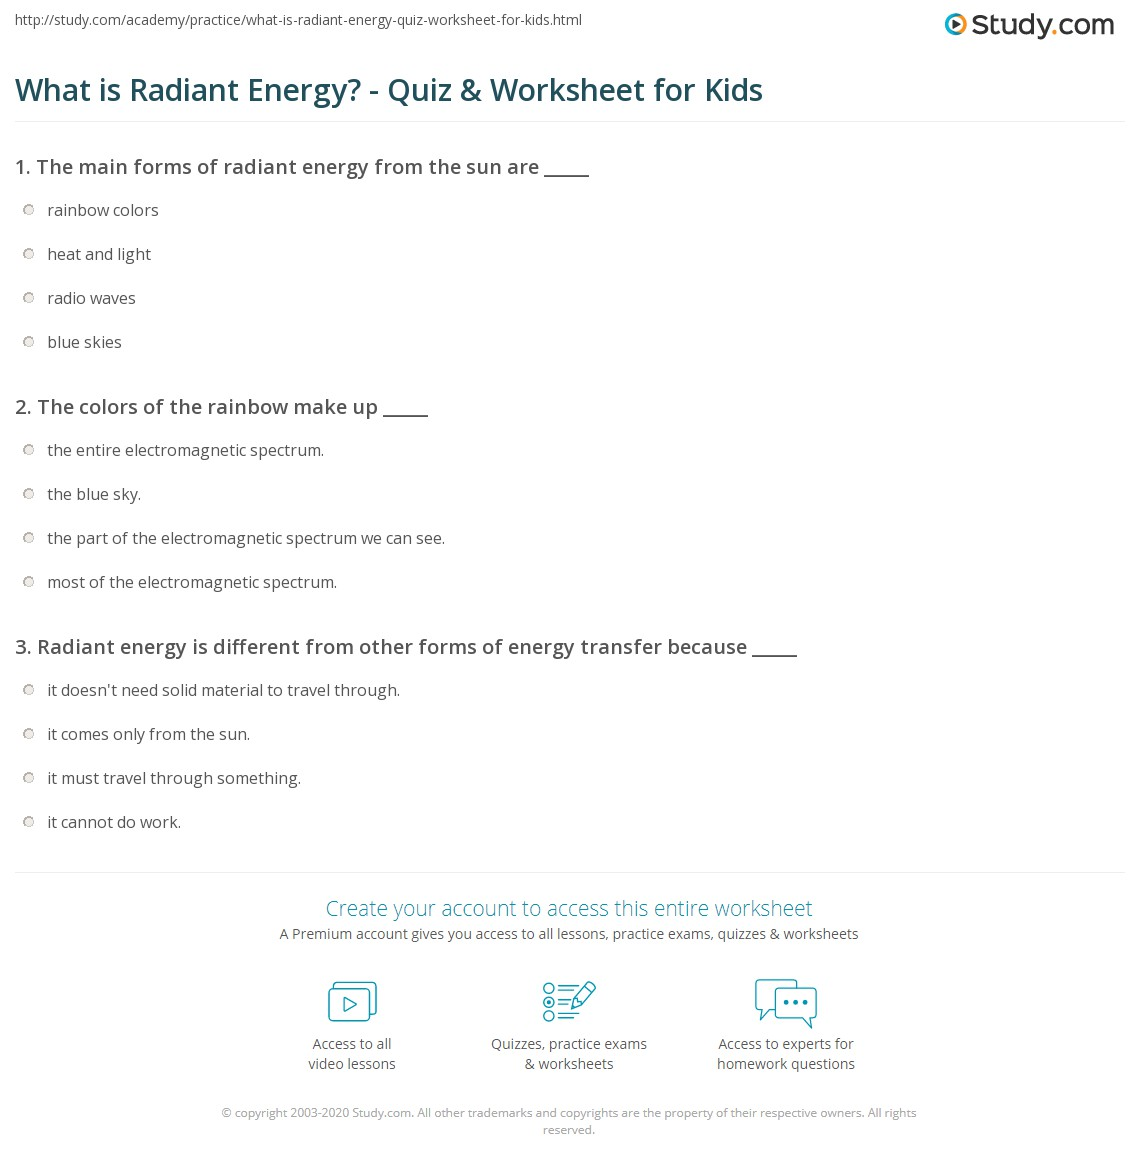 What is Radiant Energy? - Quiz & Worksheet for Kids | Study.com